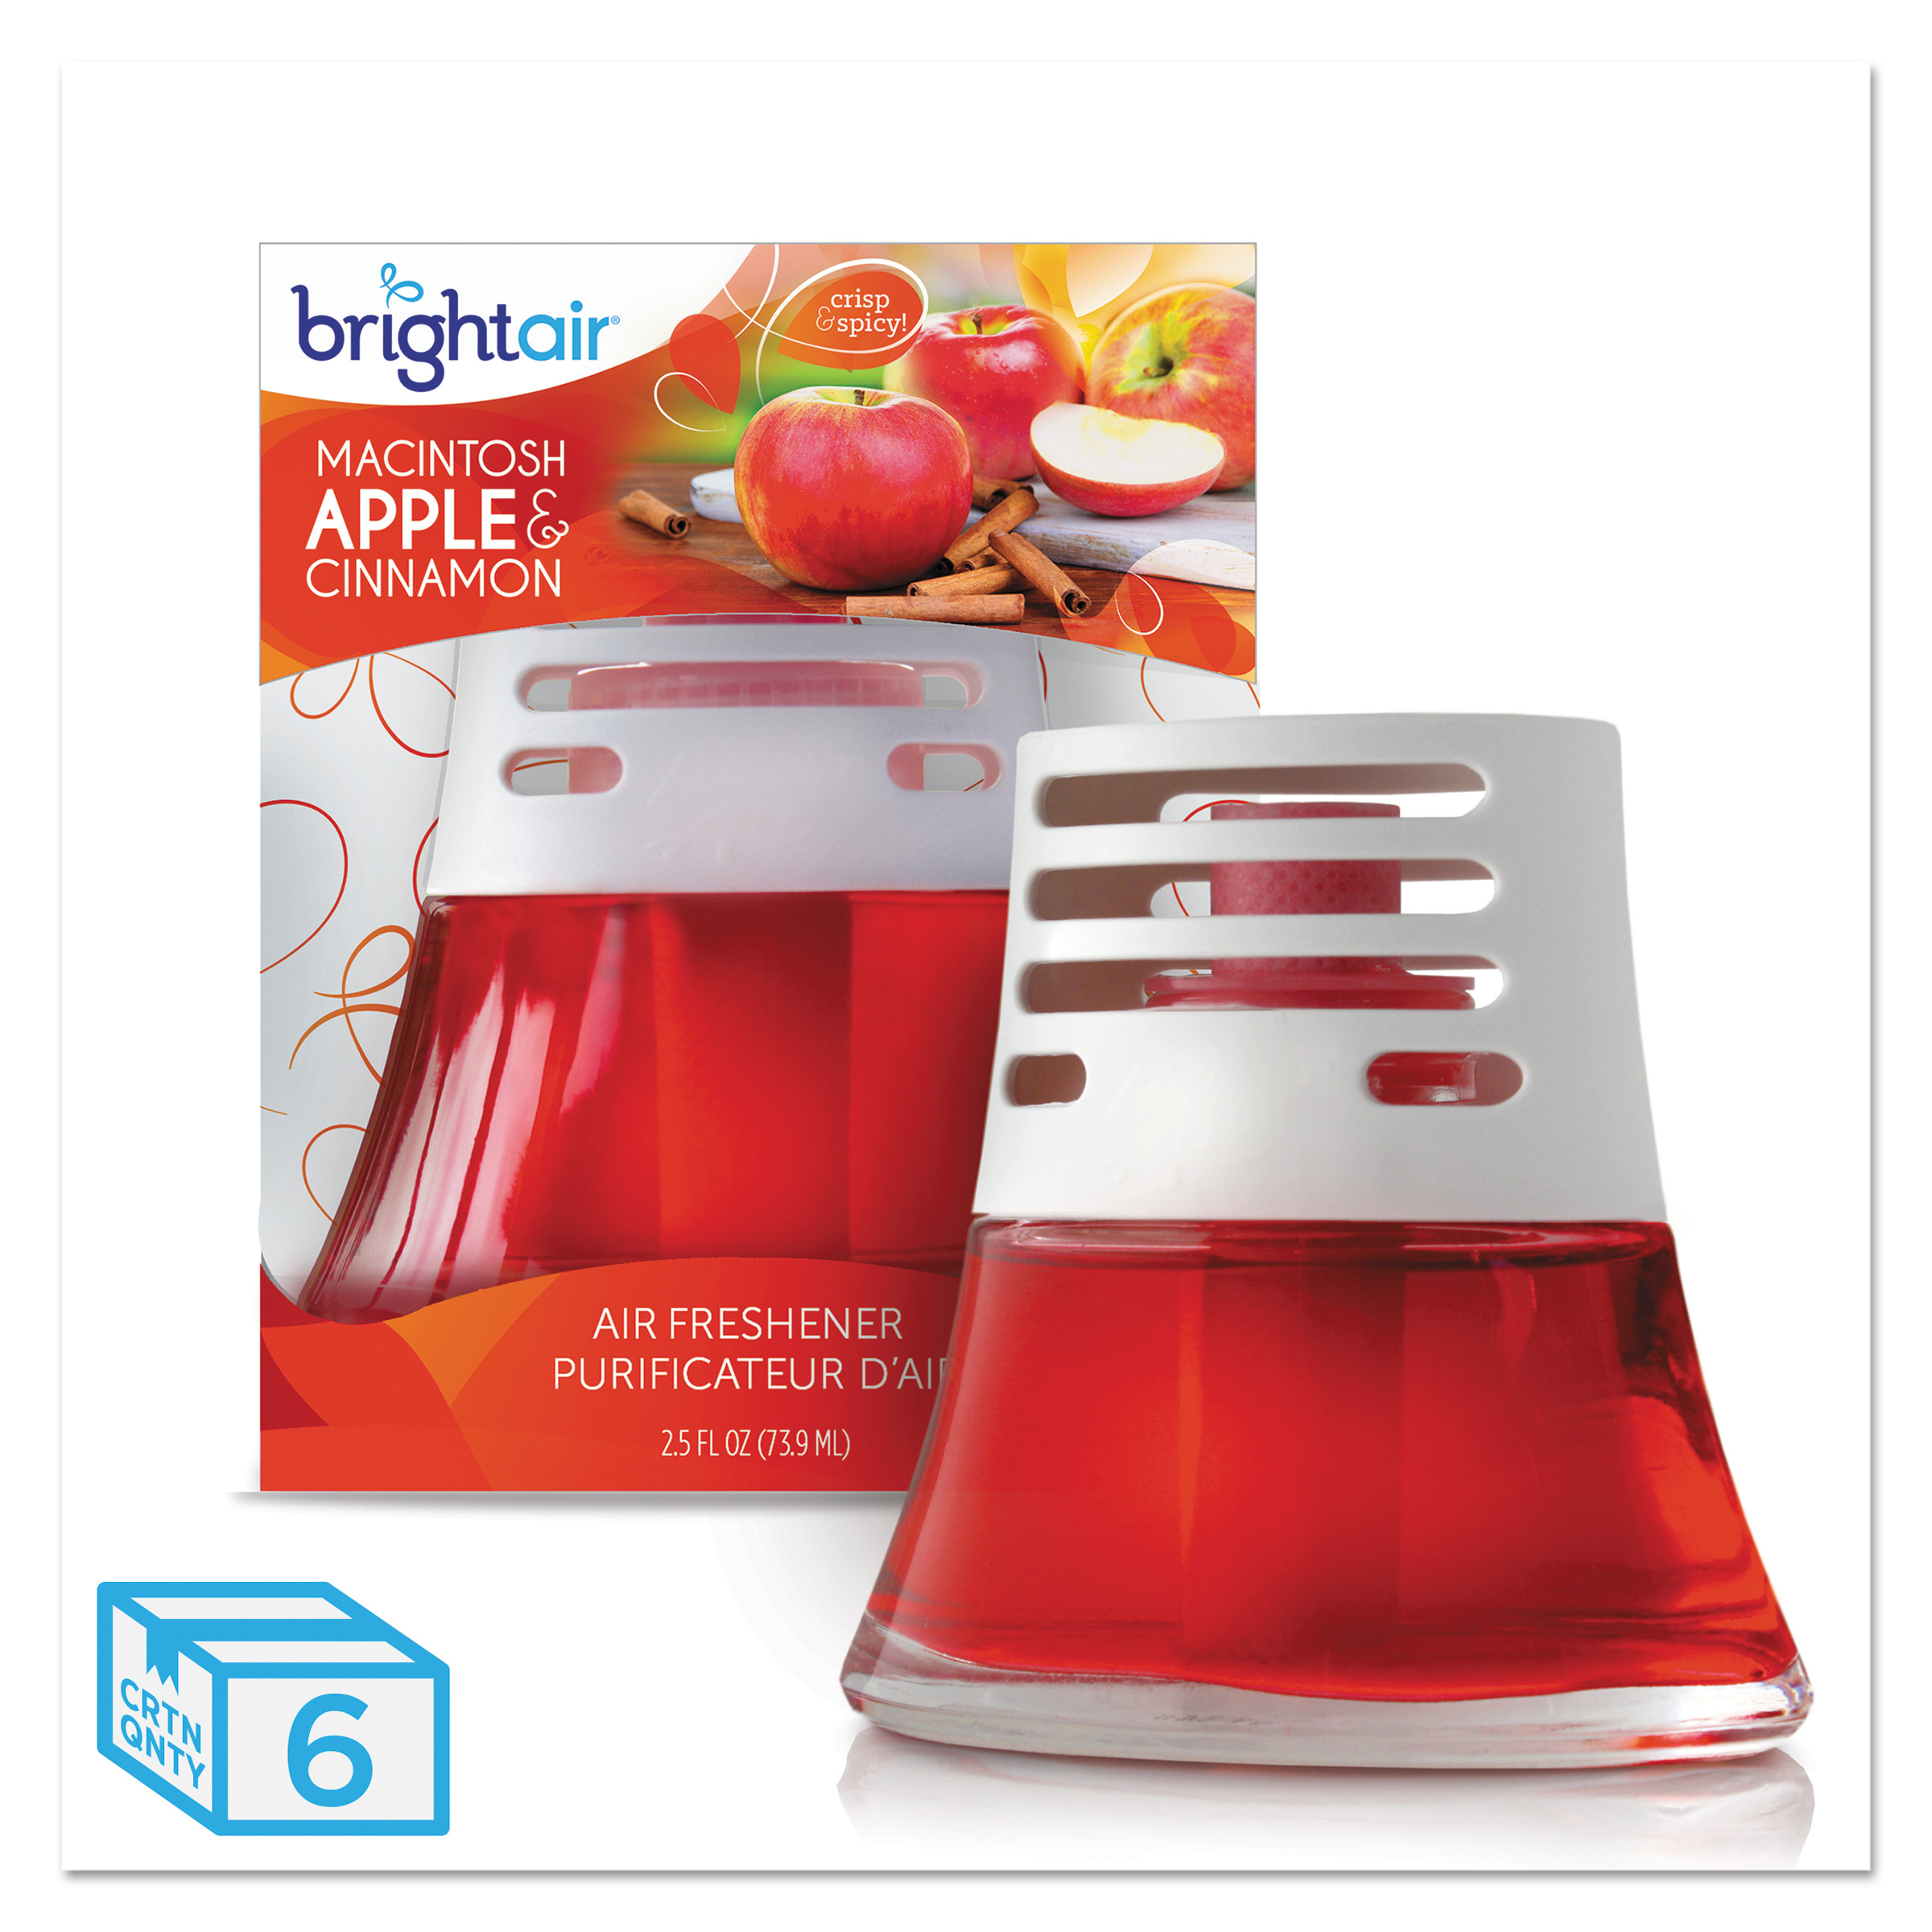 BRIGHT Air Scented Oil Air Freshener, Macintosh Apple and Cinnamon, Red, 2.5oz, 6/Carton